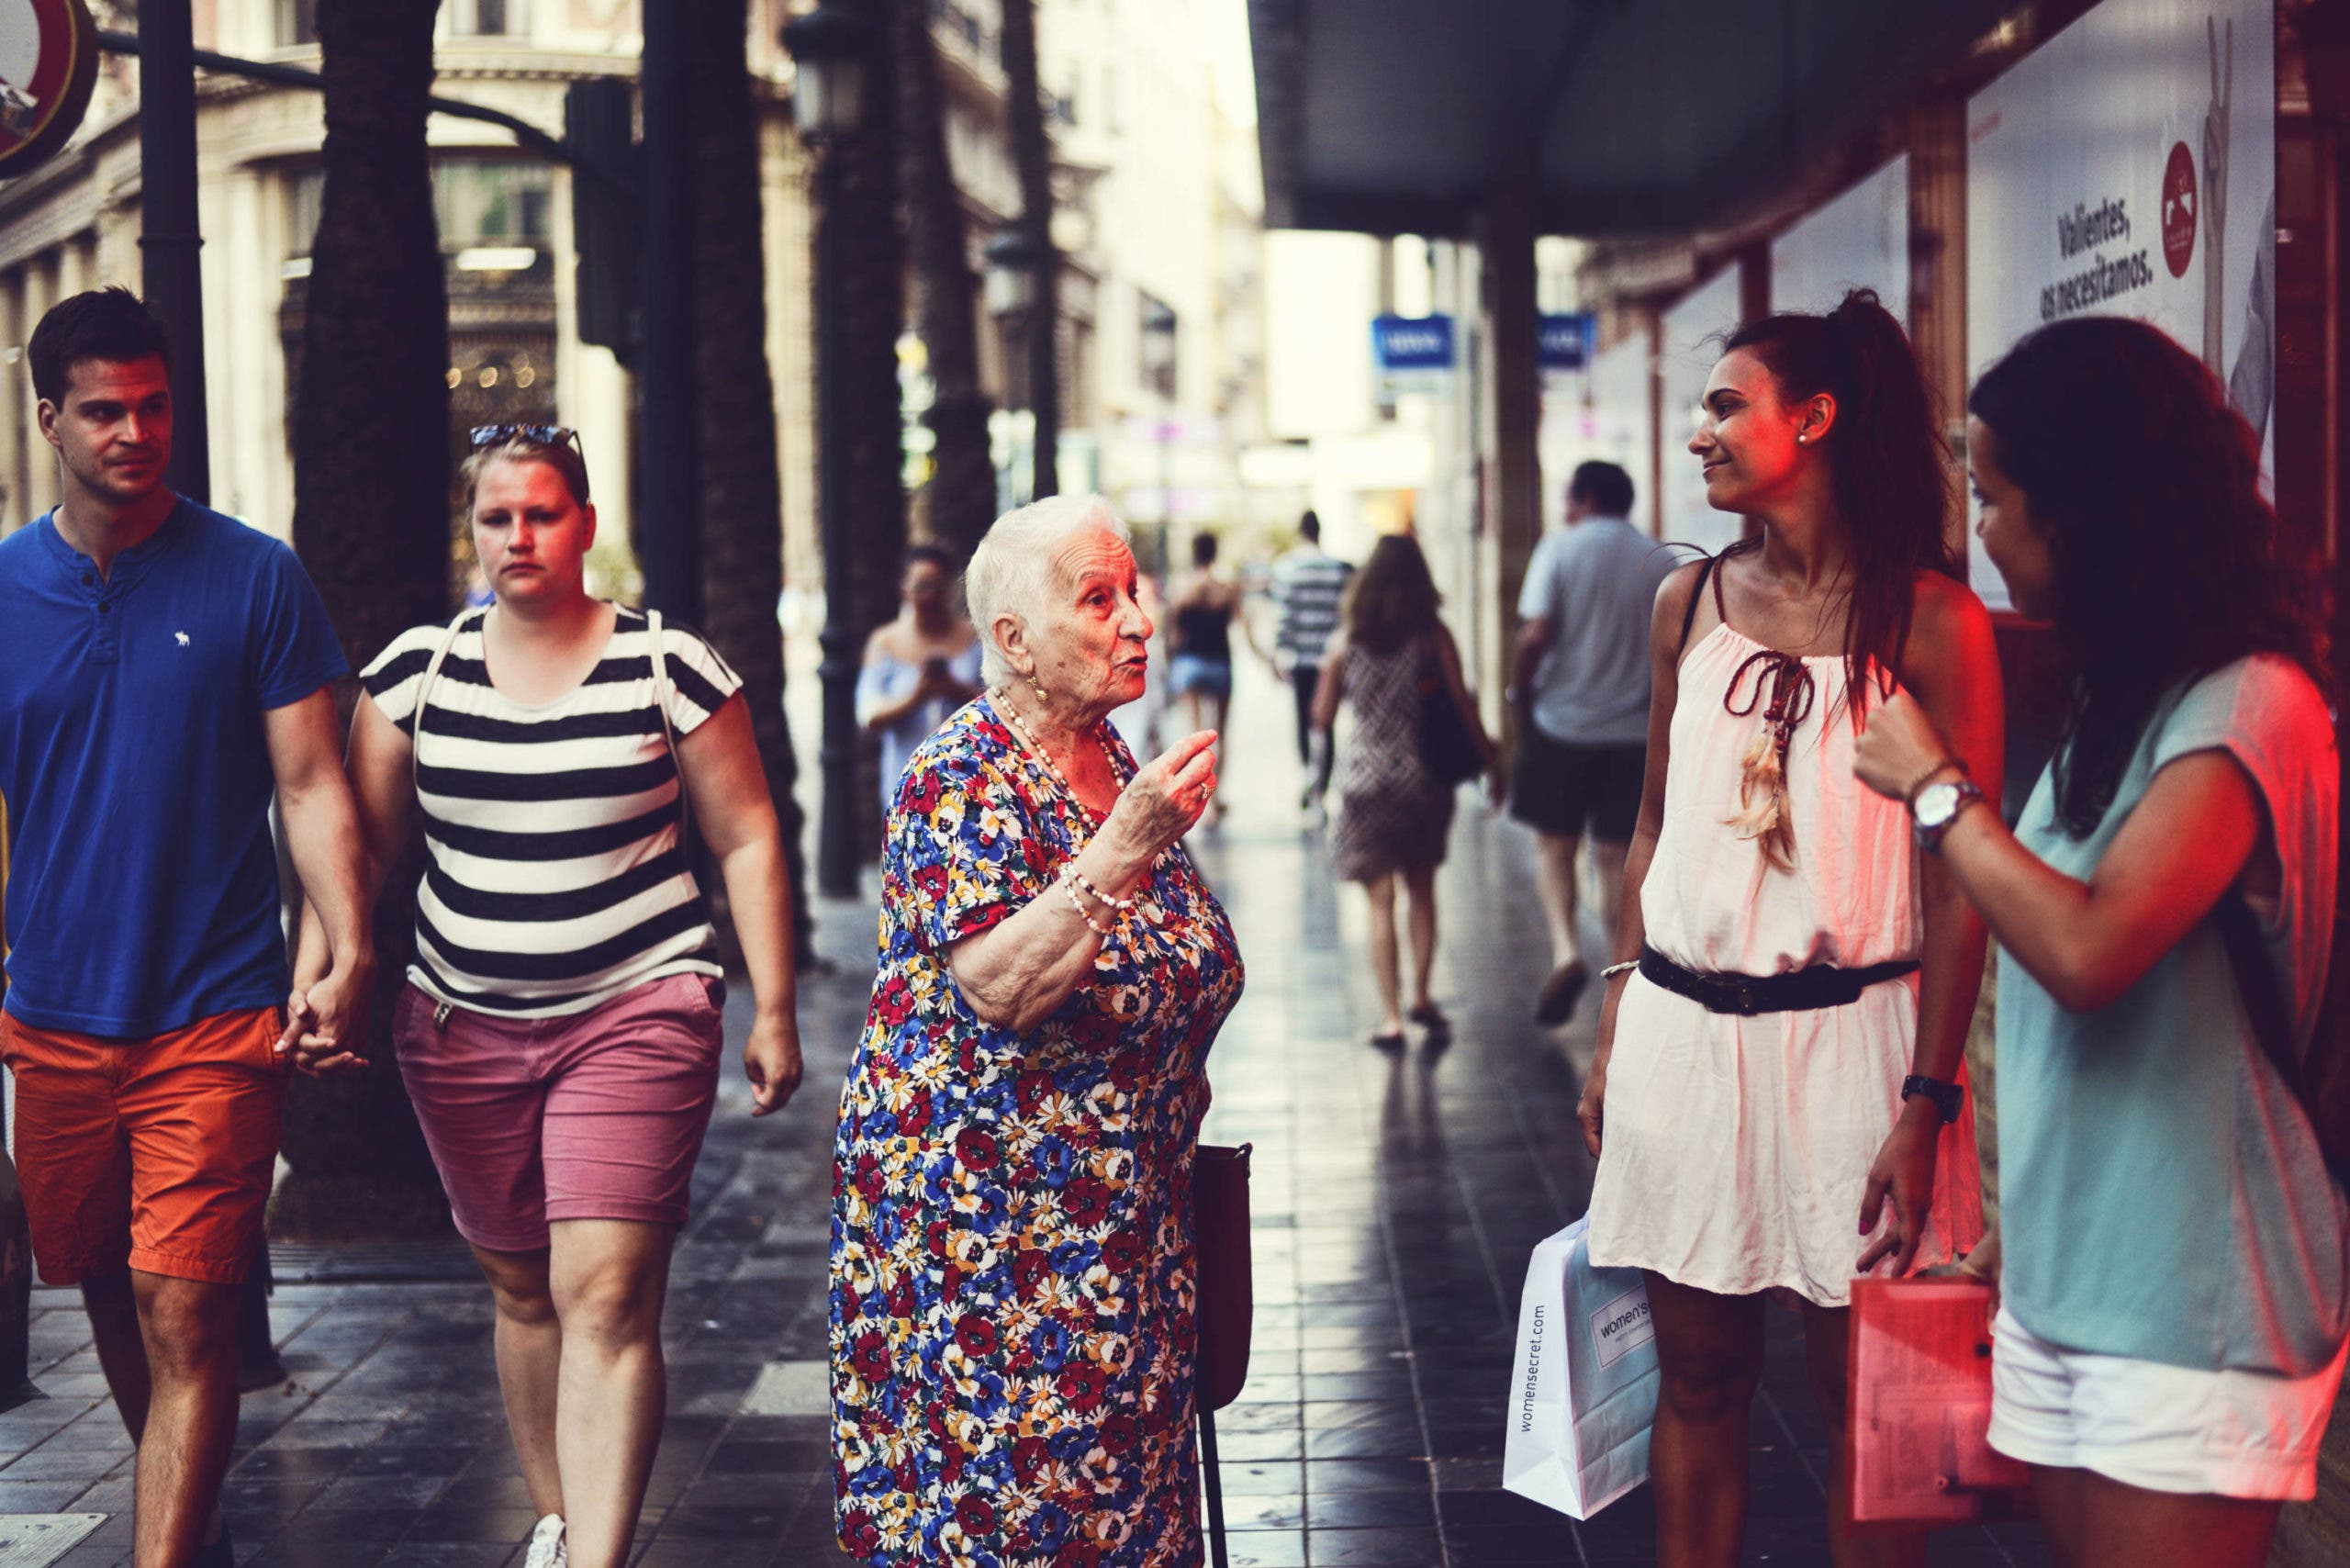 OP-Ed: Street Photography Has Lost Its Soul. Here's How to Find It